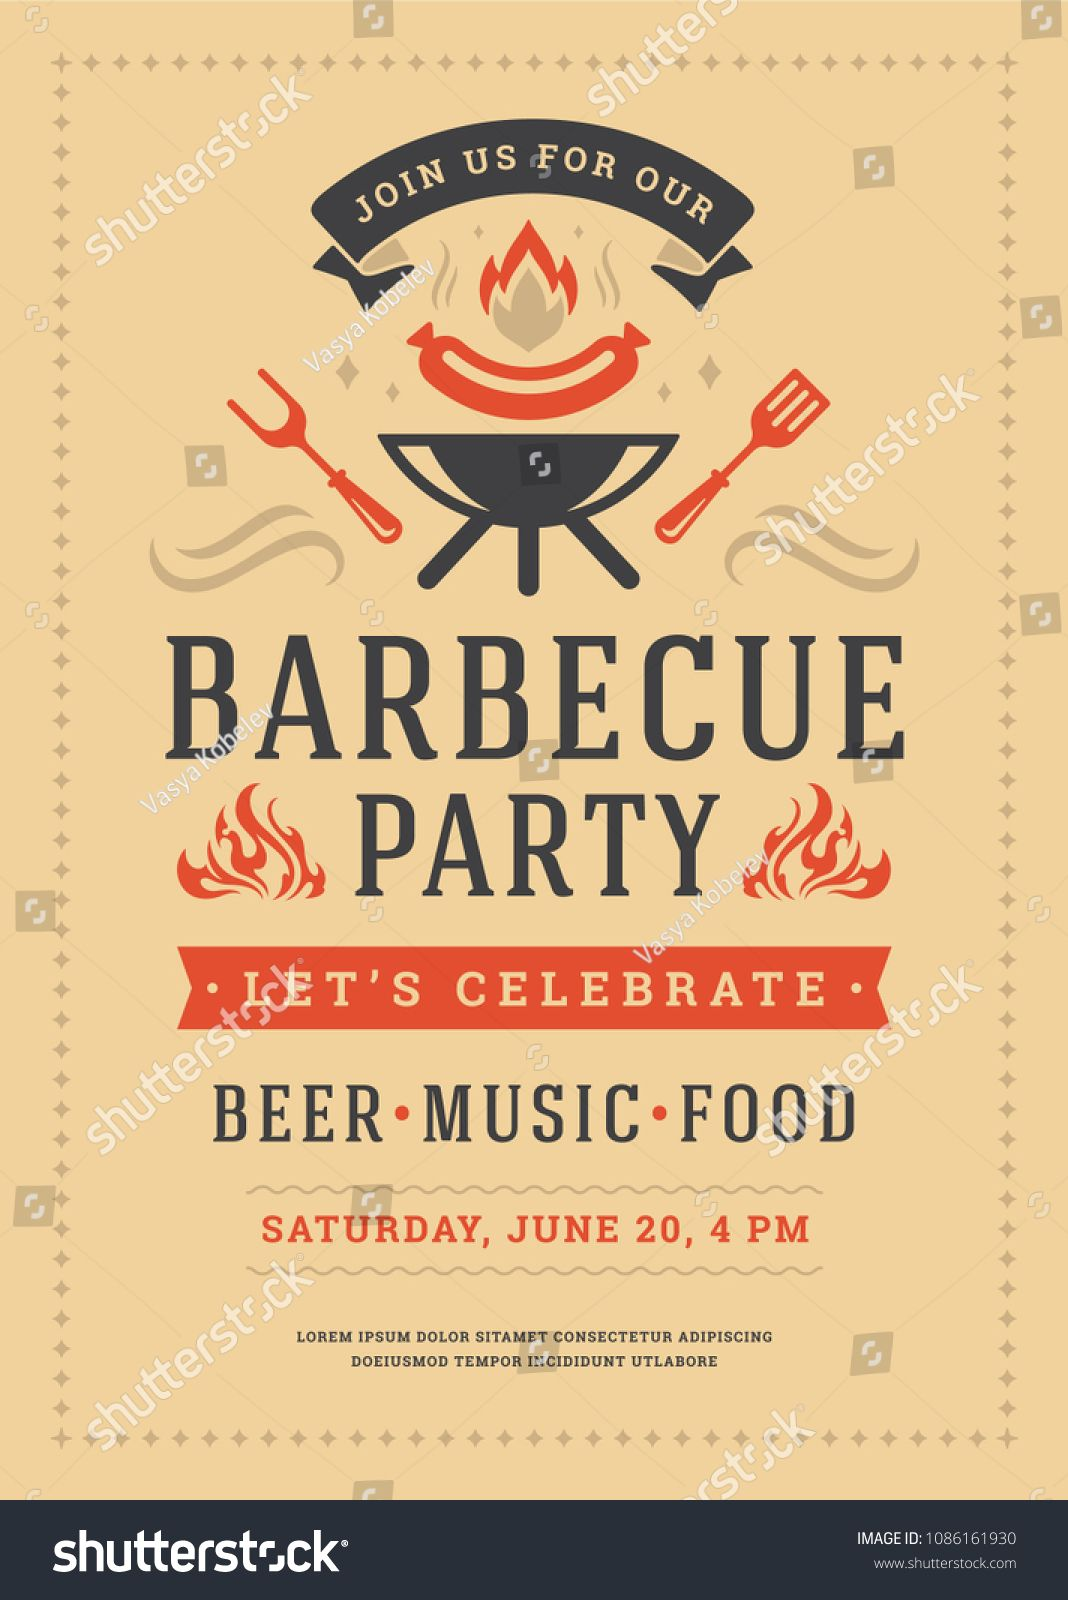 barbecue party vector flyer or poster design template bbq cookout